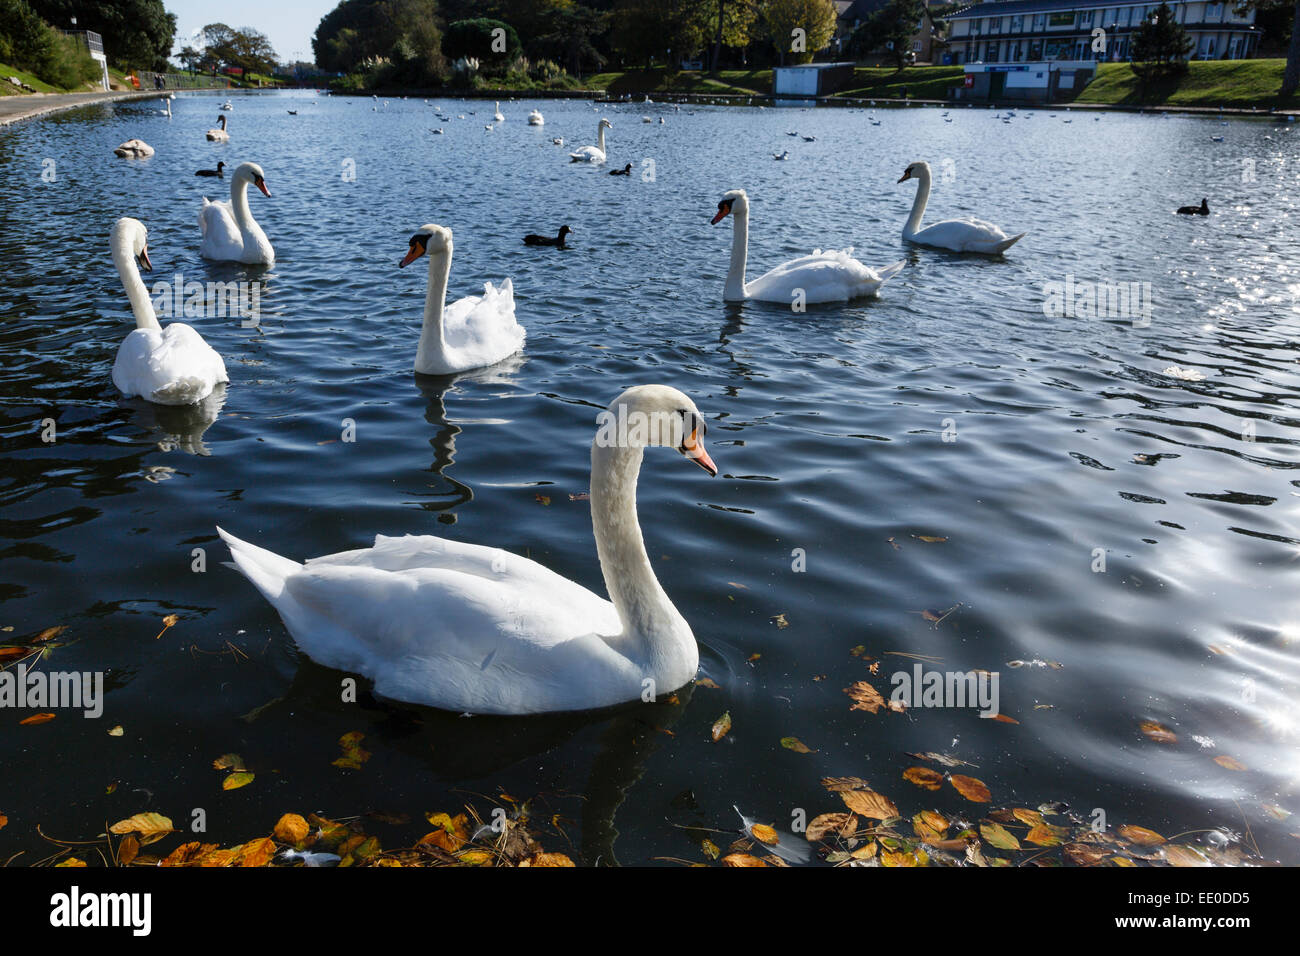 Mute swans on Ryde Boating Lake (also known as the Canoe Lake), Isle of Wight. - Stock Image